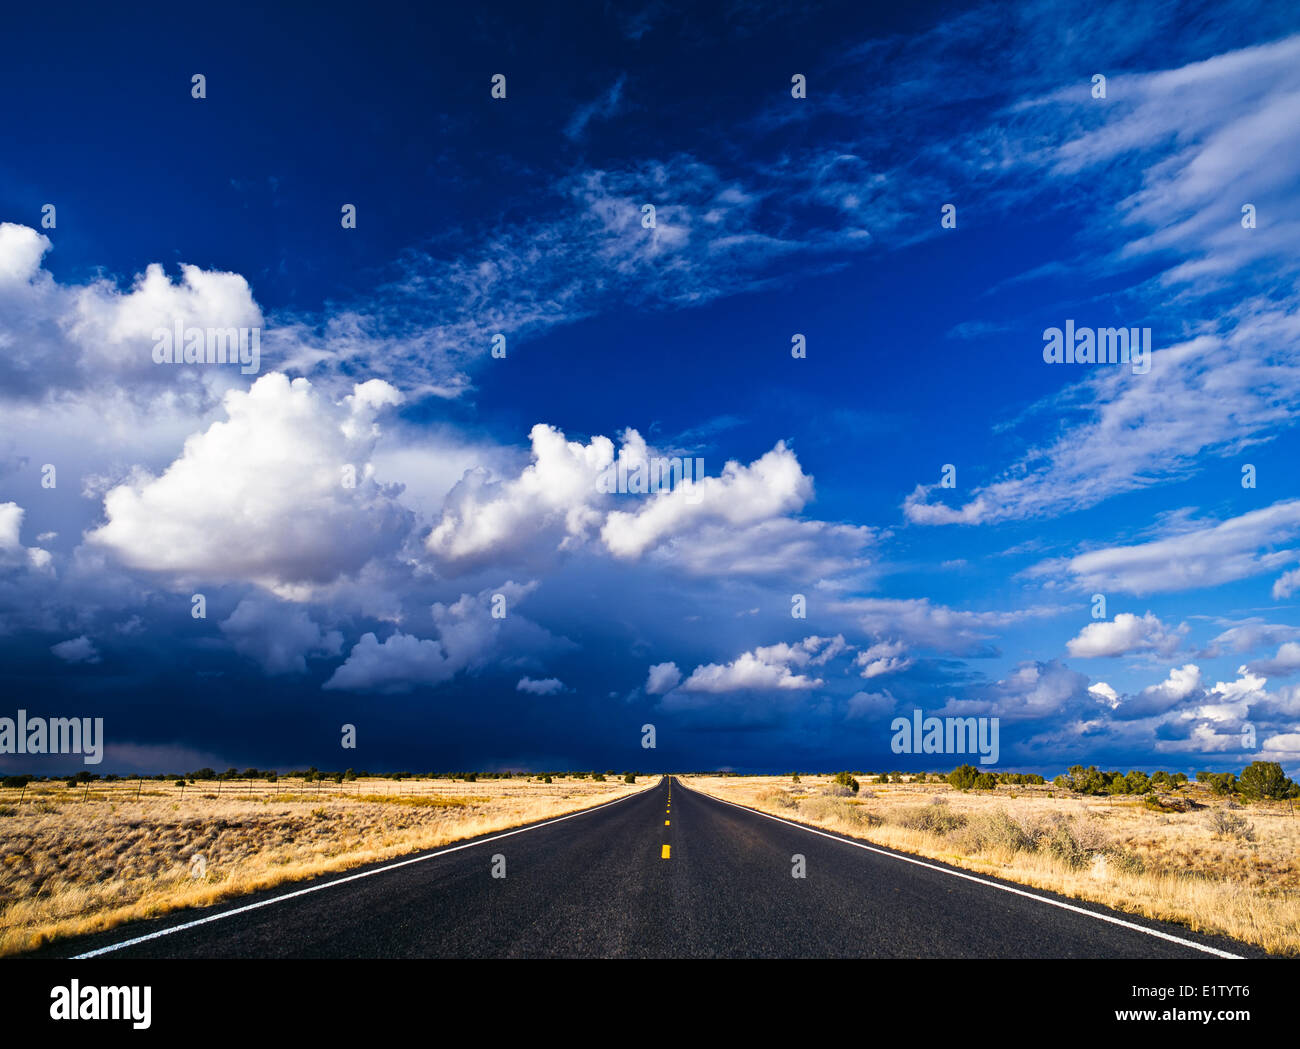 Thunderstorm and storm clouds above a desert road highway in New Mexico, USA. - Stock Image